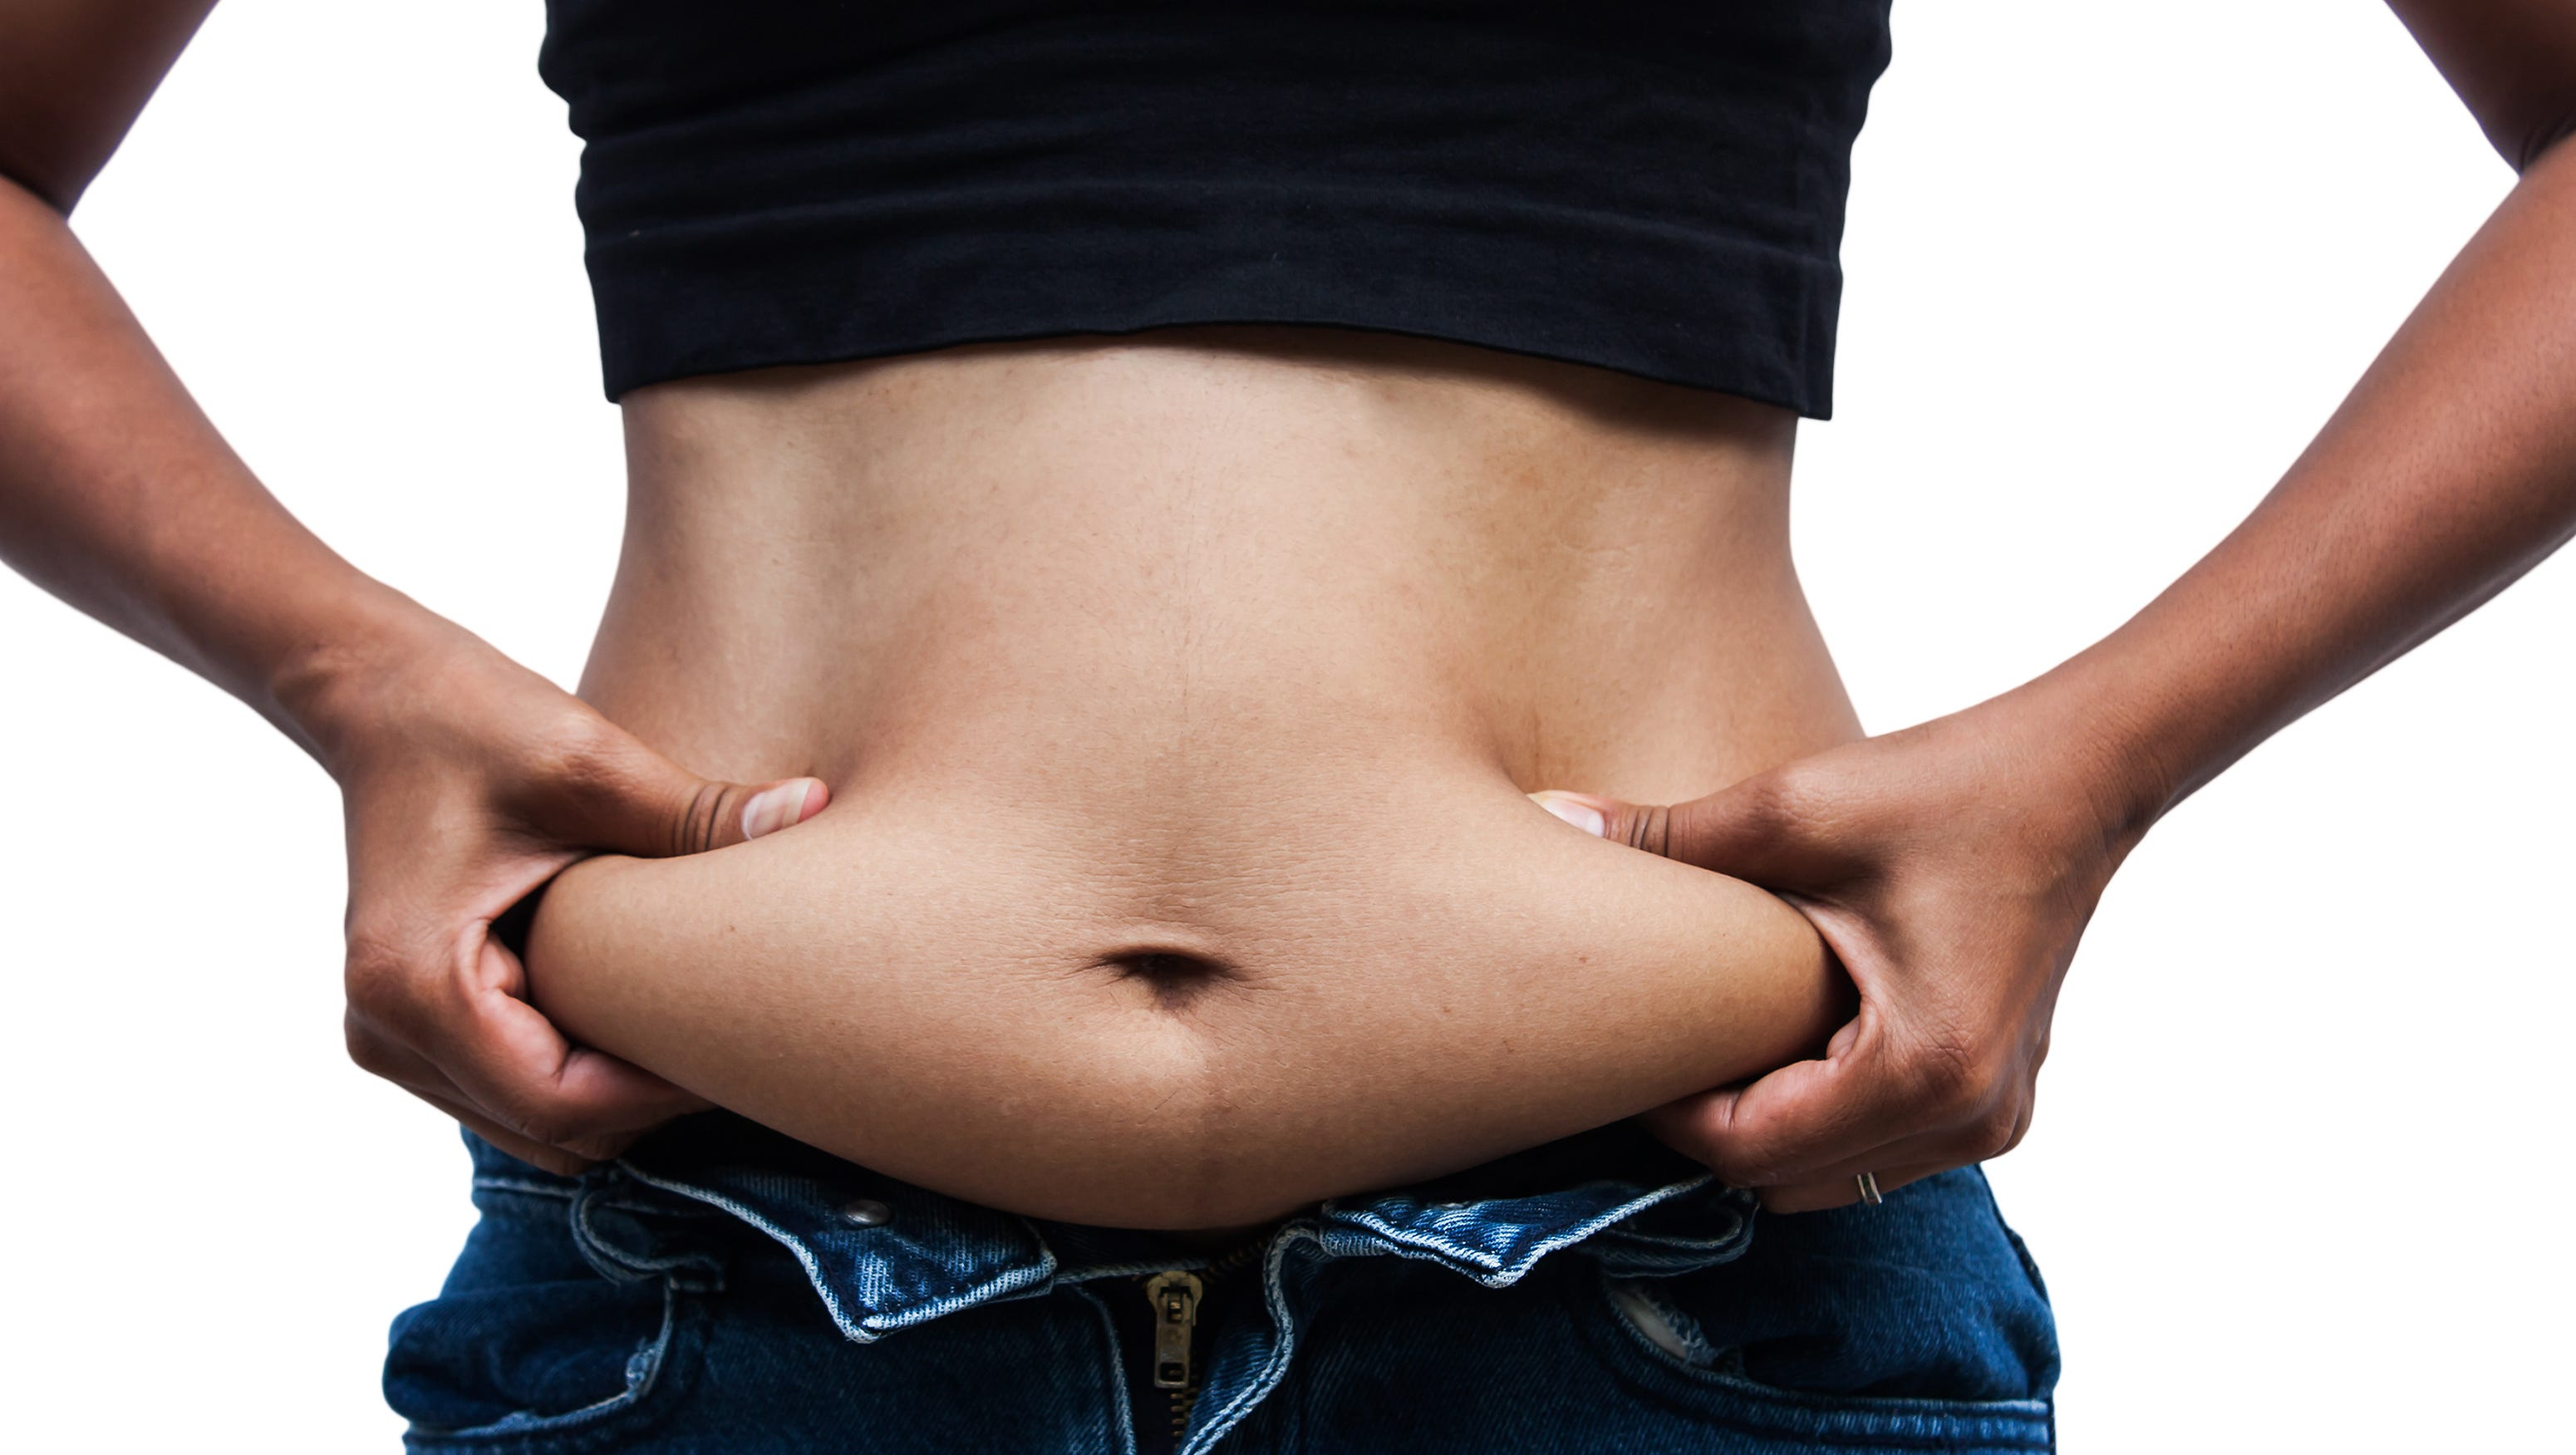 Want a healthy body? It's all about that fat and muscle, not your BMI